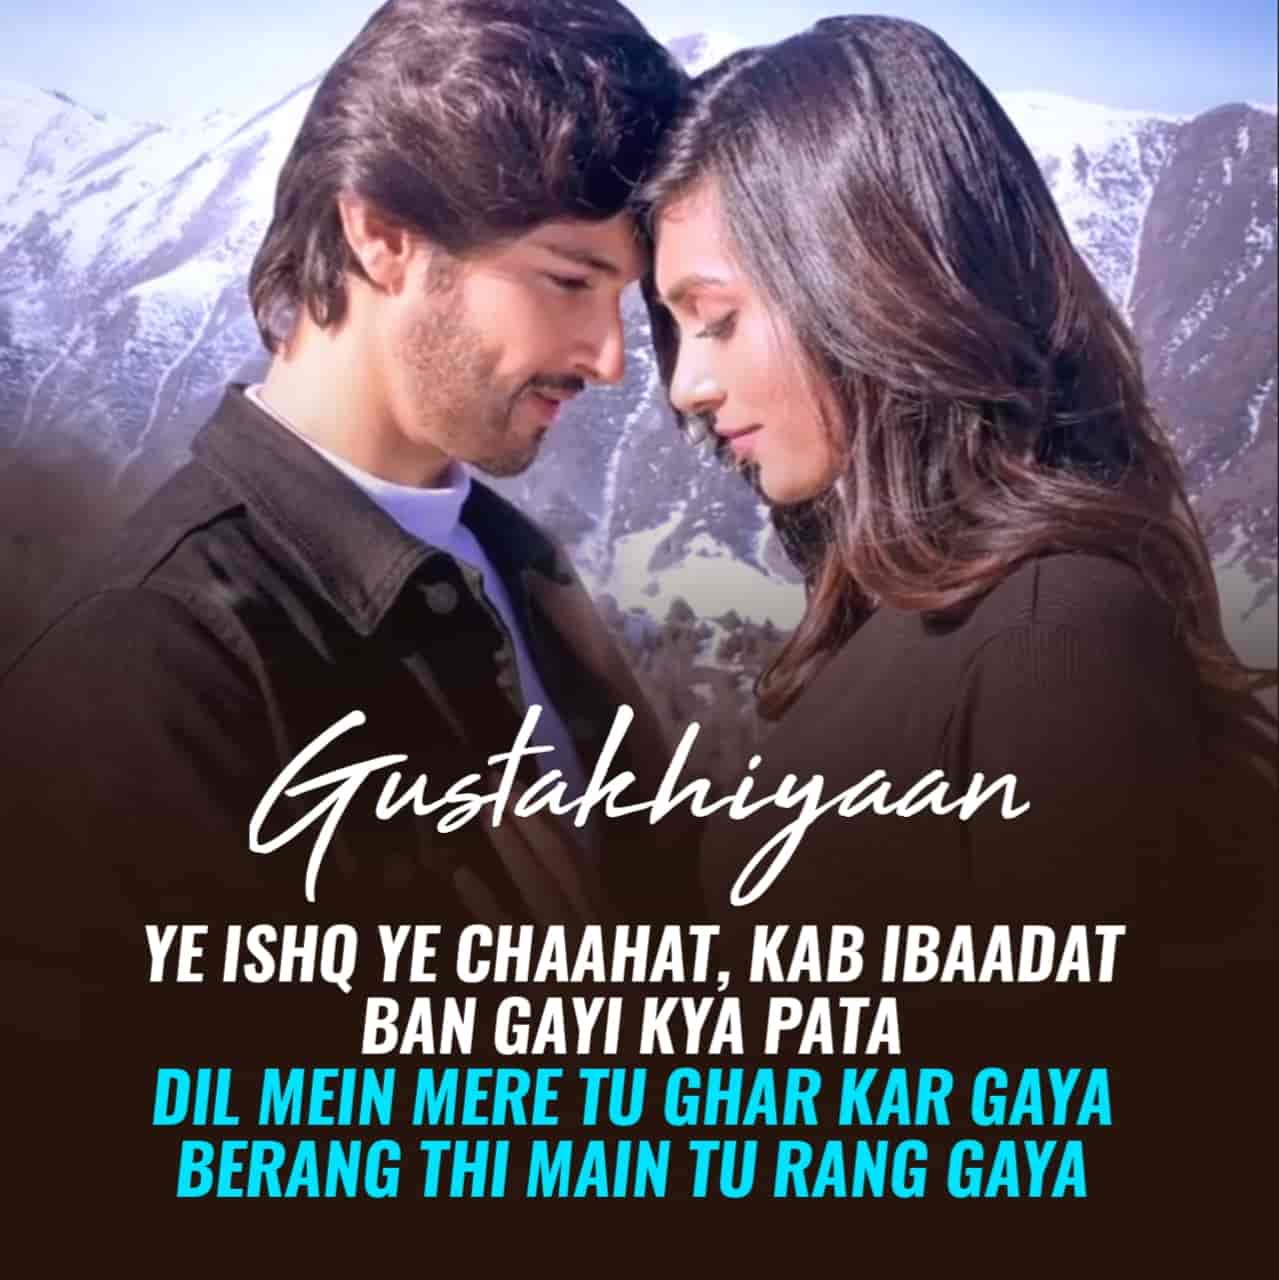 Gustakhiyaan Lyrics :- Raghav Chaitnaya and Ritrisha Sarma given their melodious voices in a beautiful track Gustakhiyaan has released. Actor Rohan Mehera and Vaishnavi Andale are featuring in this song as a lead roles. Music of this song has given by Anurag Saikia while this beautiful track Gustakhiyaan lyrics has penned by Kaushal Kishore. Video of this song has directed by Sidhaant Sachdev. This song is presented by Times Music label.